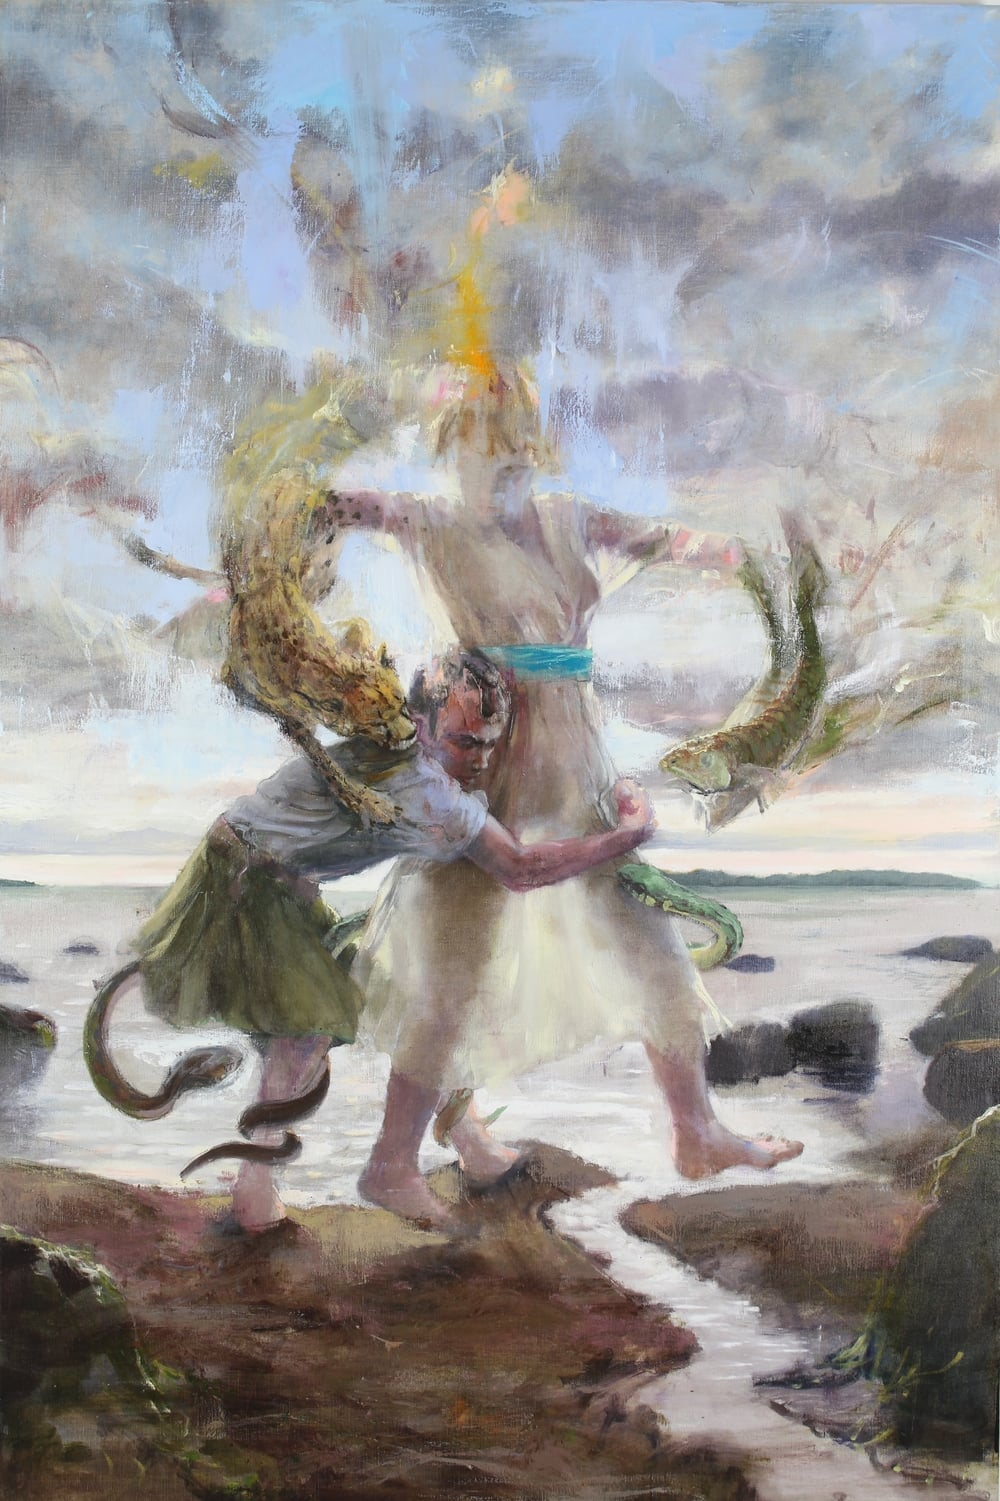 Peleus & Thetis , 2015 oil on canvas, 60 x 40 inches